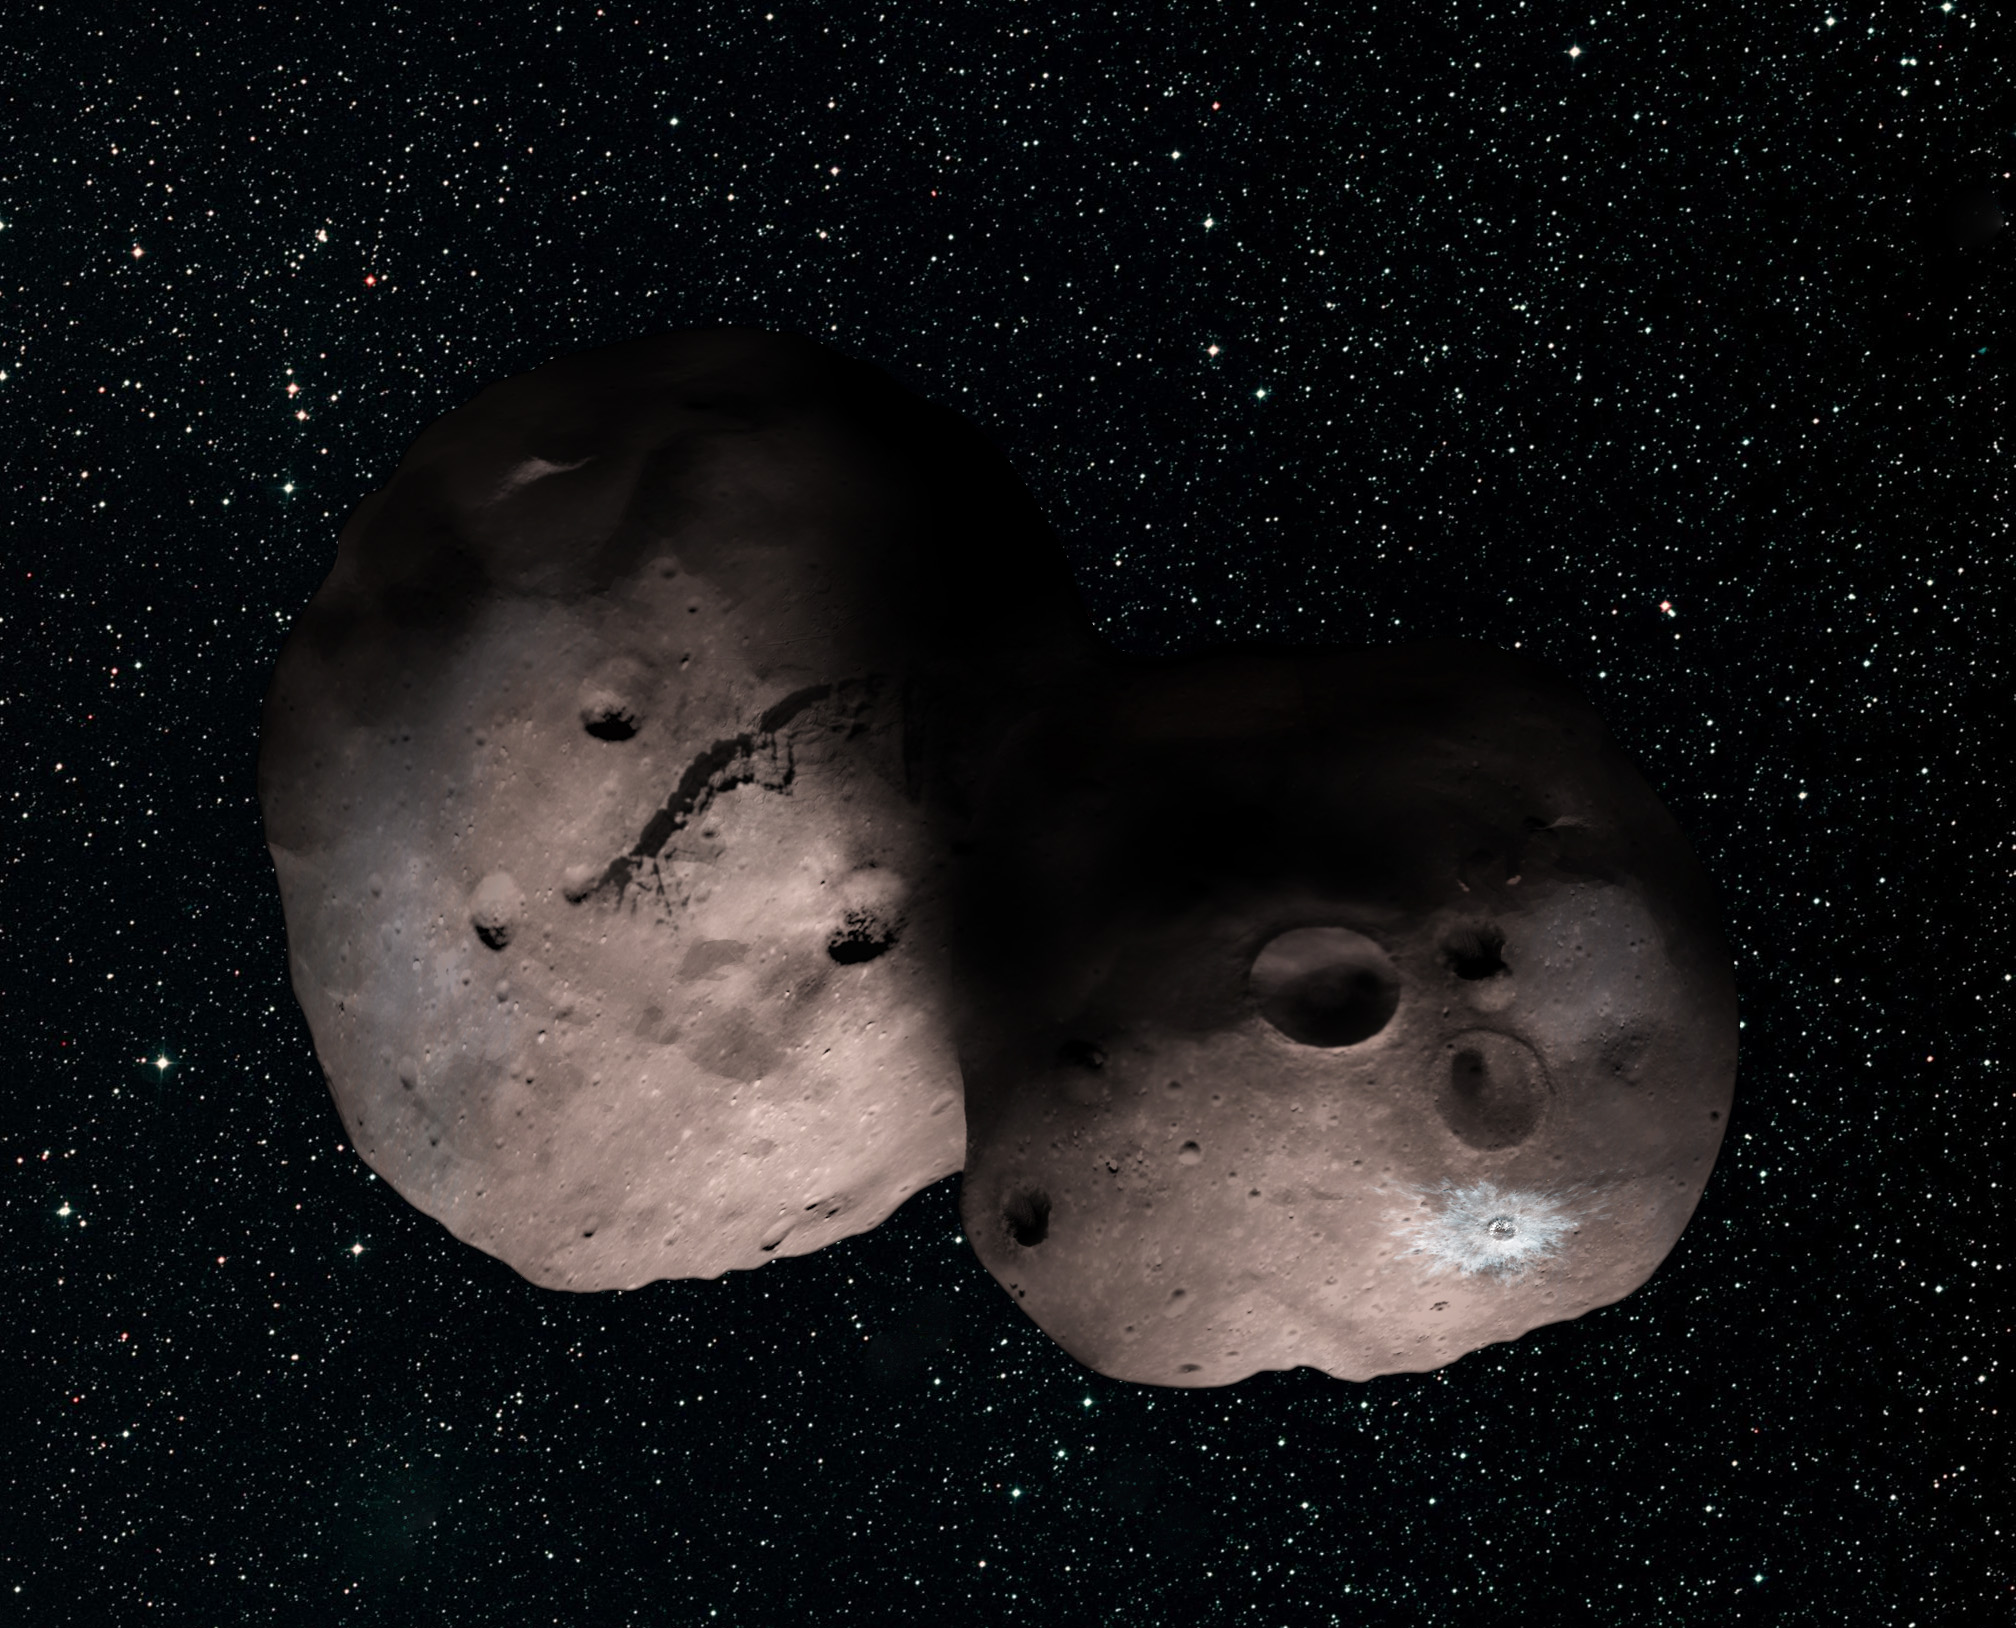 One artist's concept of Kuiper Belt object 2014 MU69, the next flyby target for NASA's New Horizons mission. This binary concept is based on telescope observations made at Patagonia, Argentina on July 17, 2017 when MU69 passed in front of a star. New Horizons theorize that it could be a single body with a large chunk taken out of it, or two bodies that are close together or even touching. - Image Credits: NASA/JHUAPL/SwRI/Alex Parker